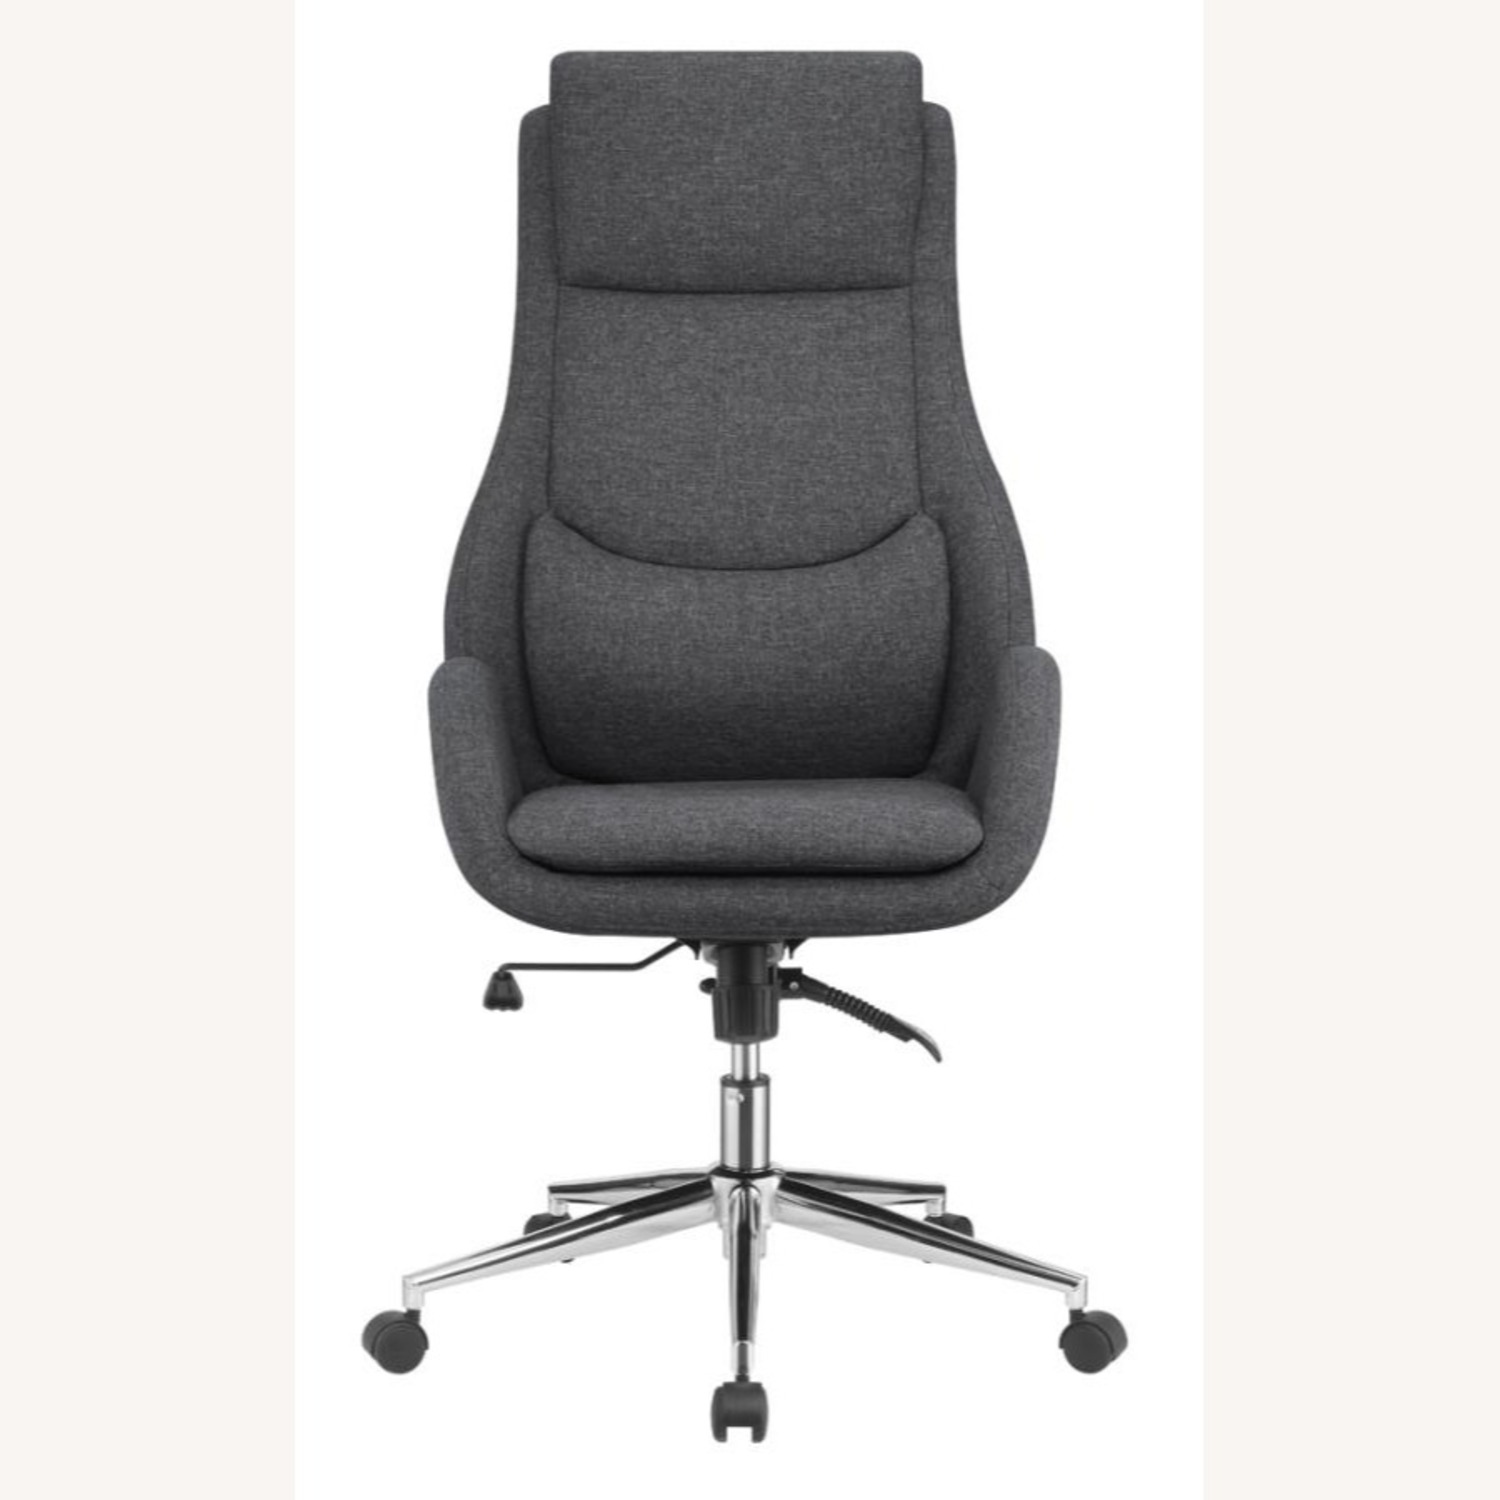 Office Chair In Grey Finish W/ Chrome Metal Base - image-1